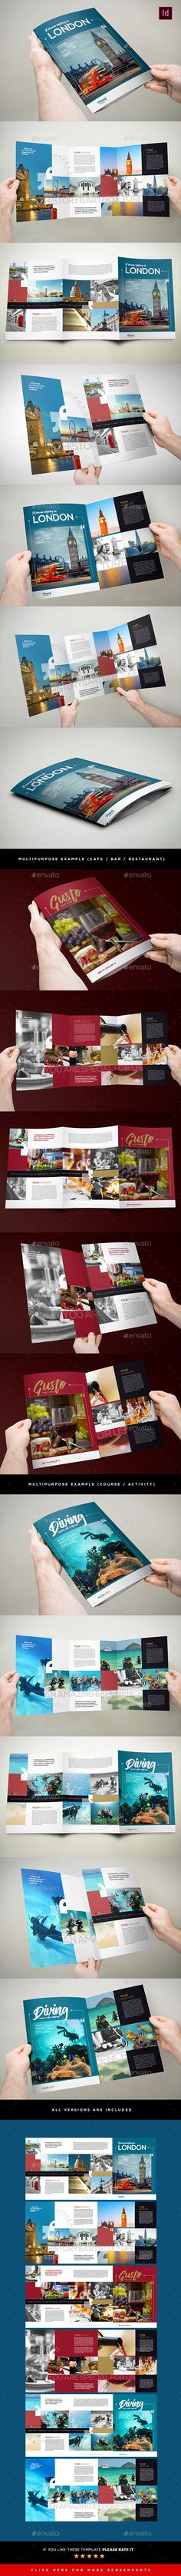 3xA4 Trifold Multipurpose Brochure Template InDesign INDD